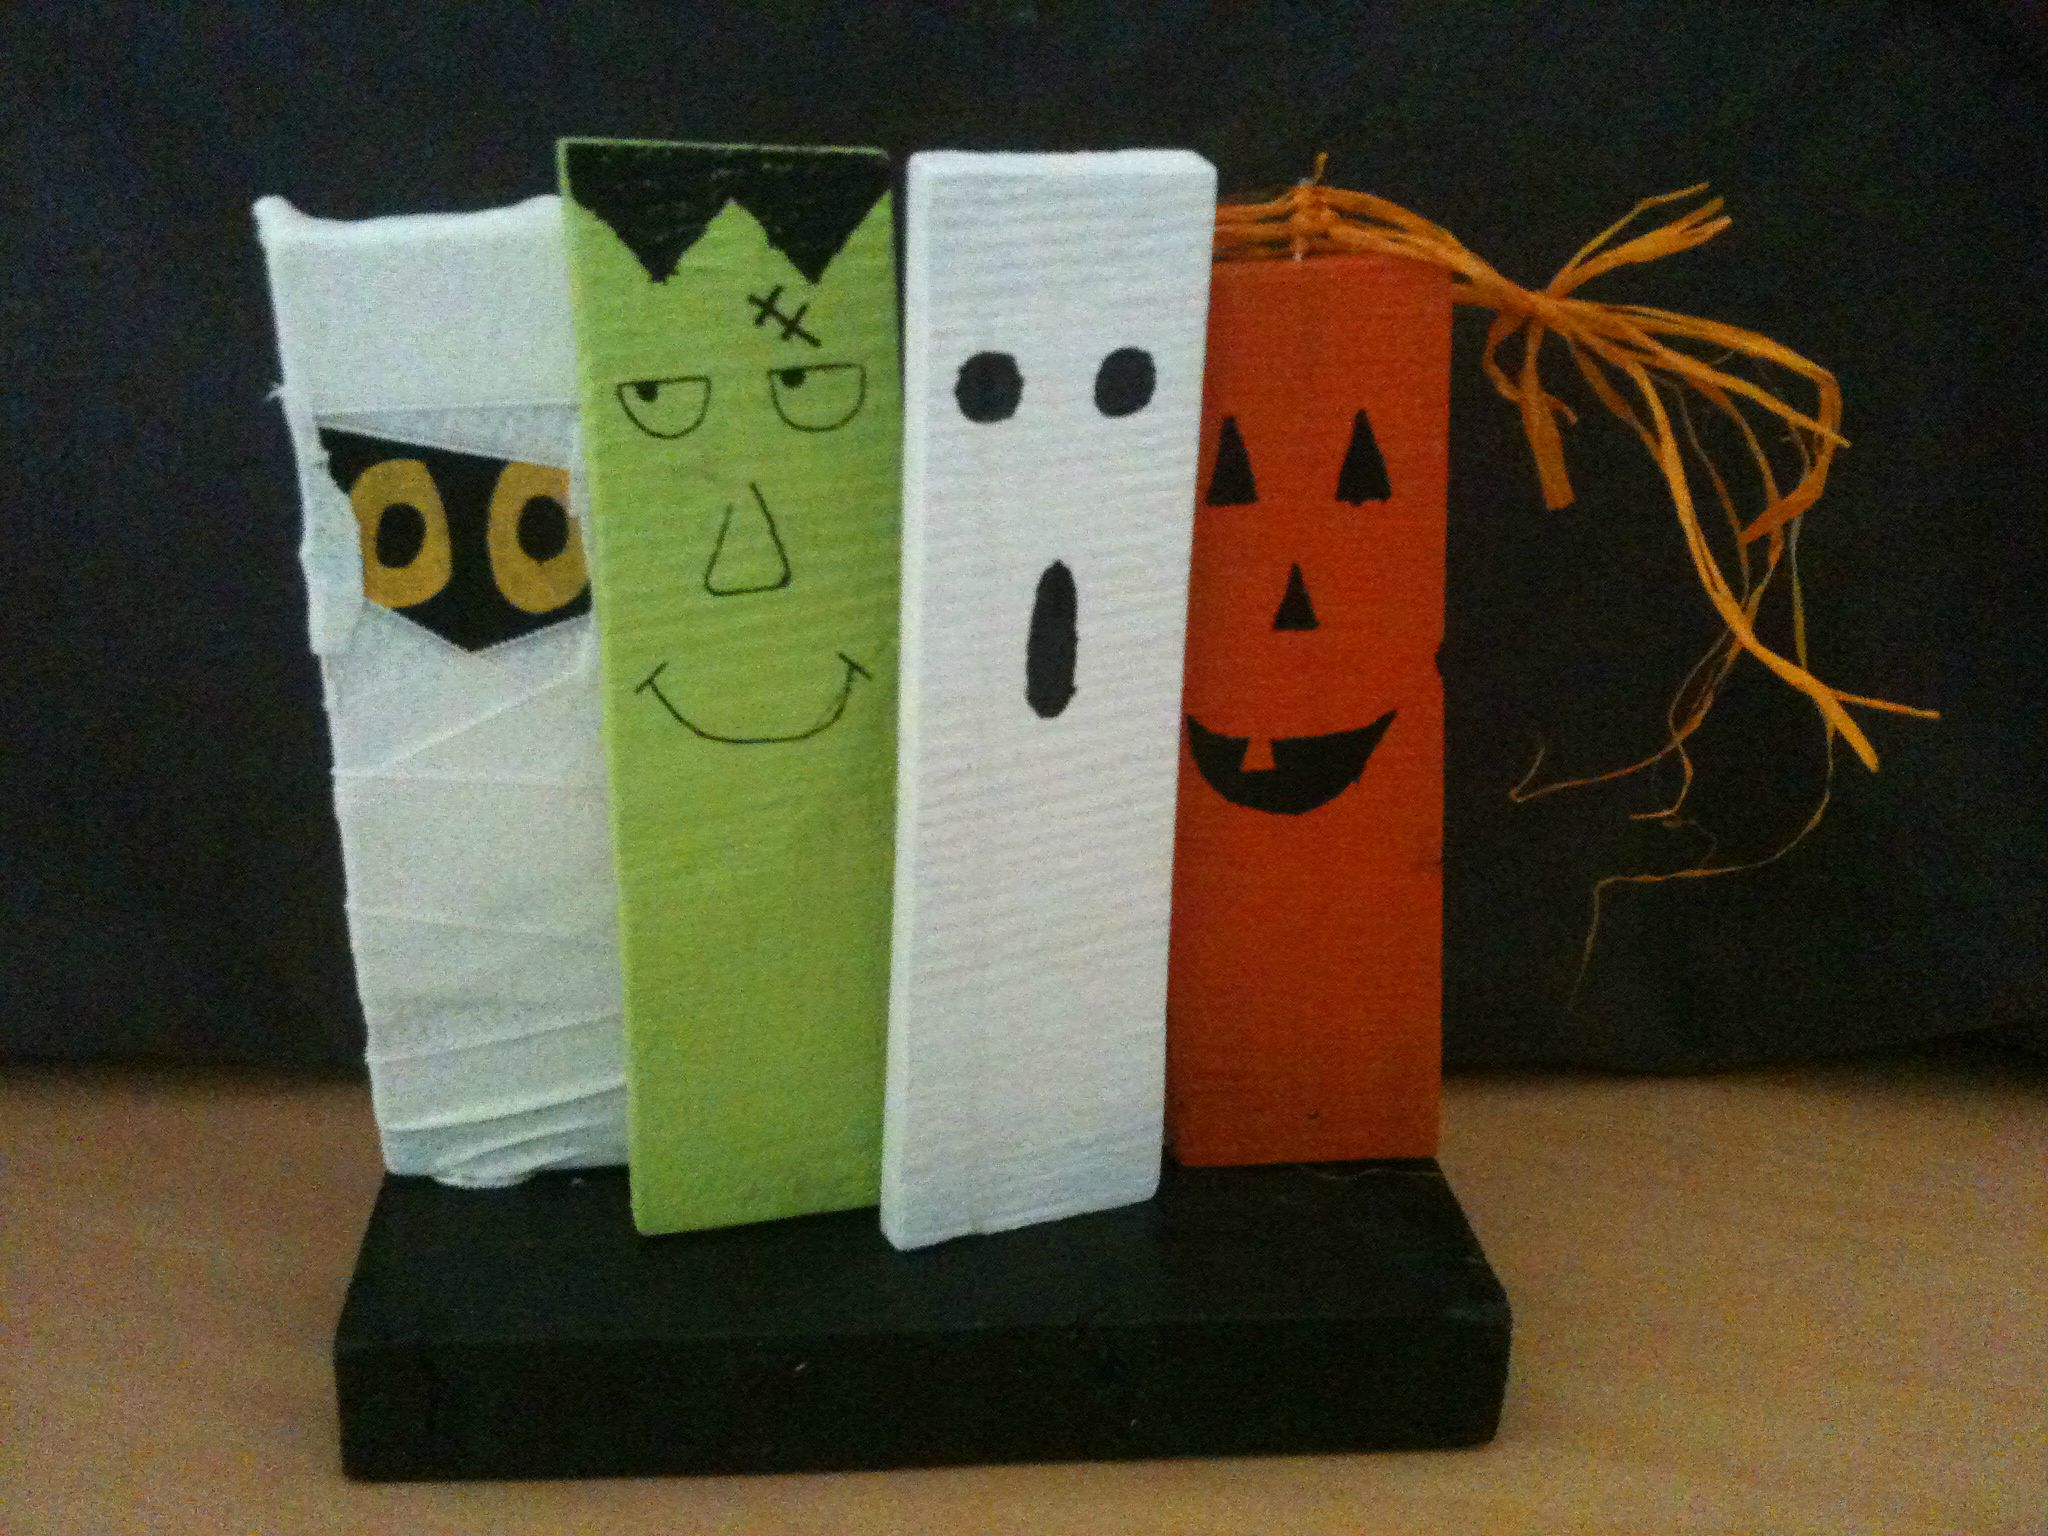 D co halloween photo de brico d co bois papier for Deco maison halloween